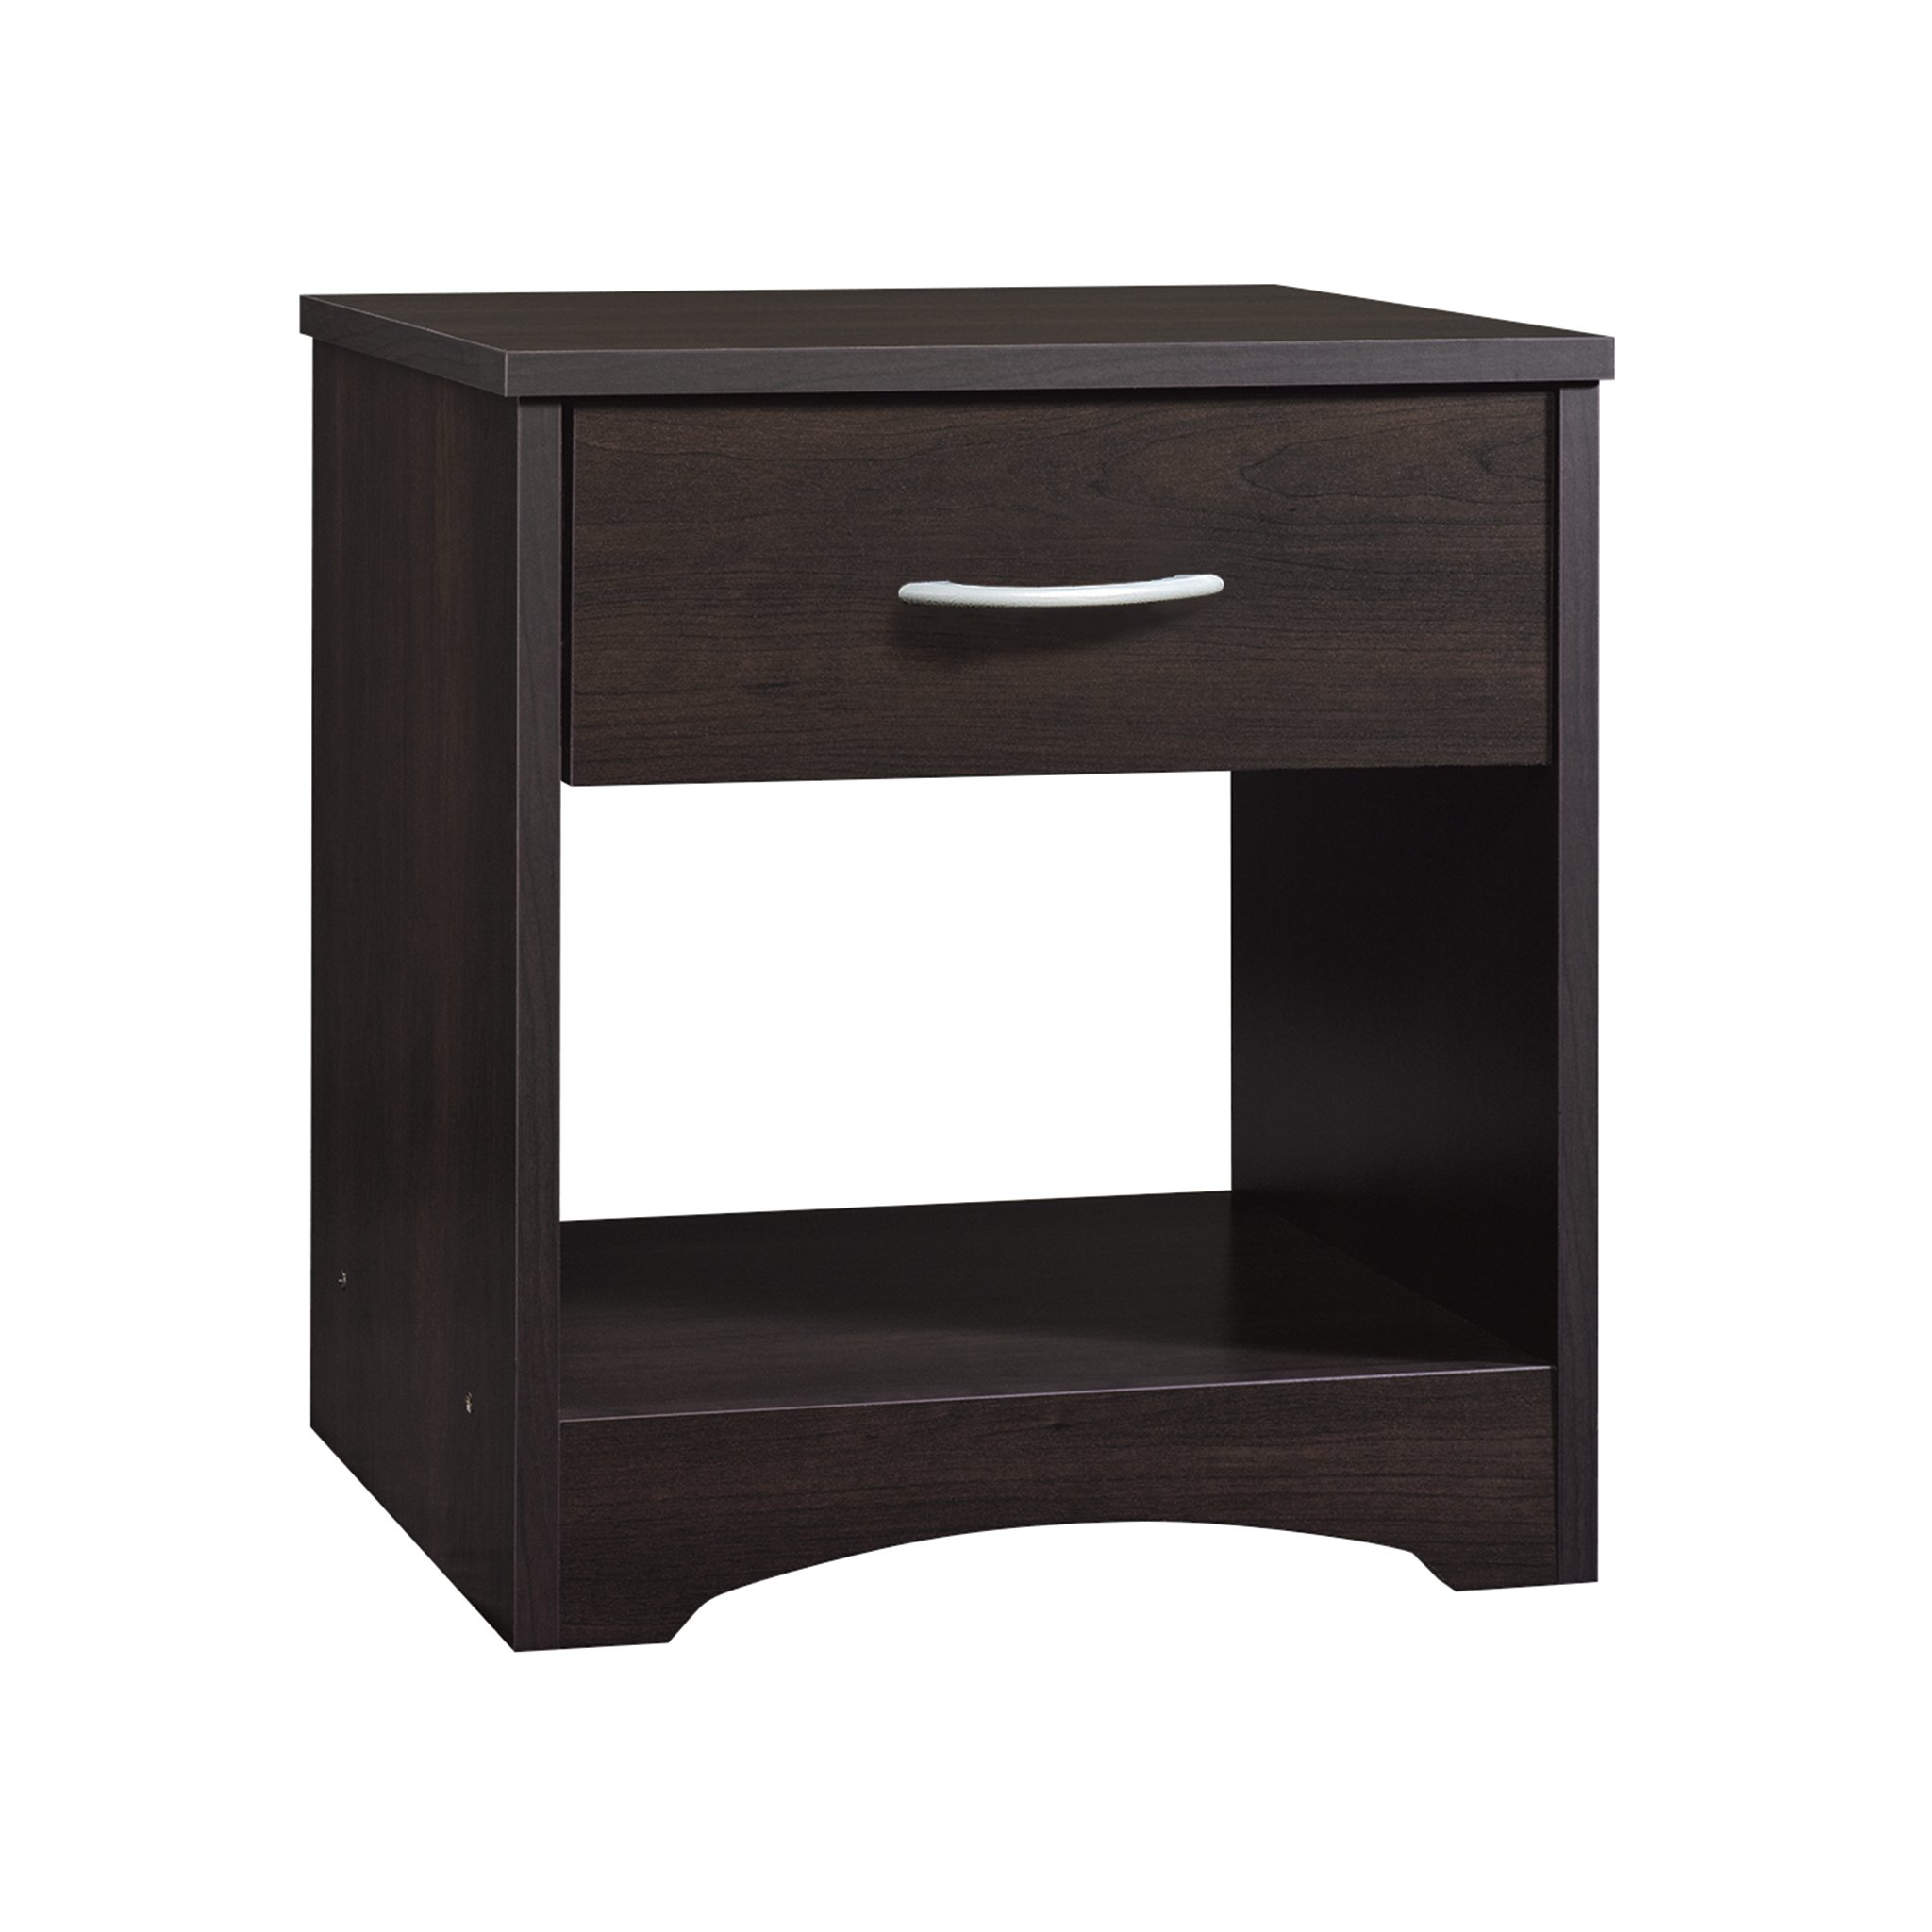 Sauder 422807 Beginnings Night Stand, L: 17.09'' x W: 14.69'' x H: 18.58'', Cinnamon Cherry finish